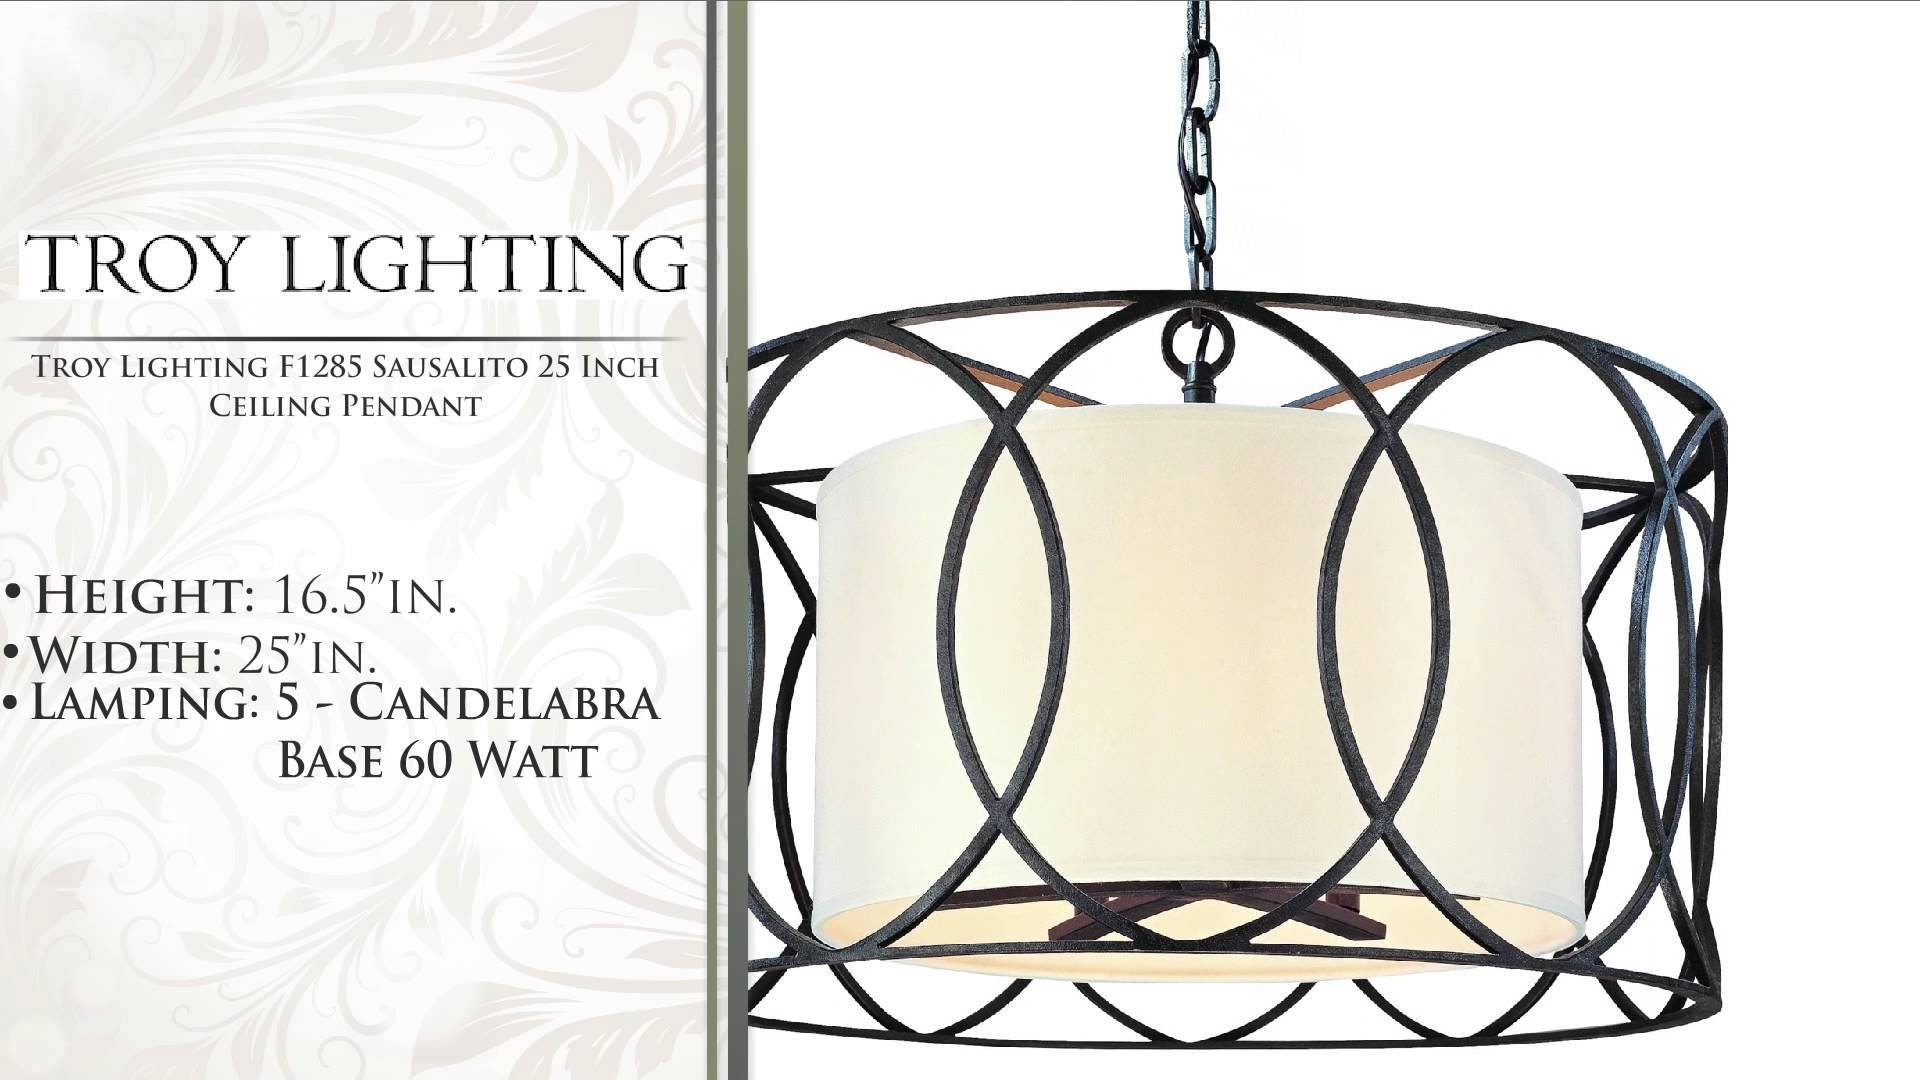 Troy Lighting F1285 Sausalito 25 Inch Ceiling Pendant – Youtube Inside Sausalito Pendant Lights (View 9 of 15)